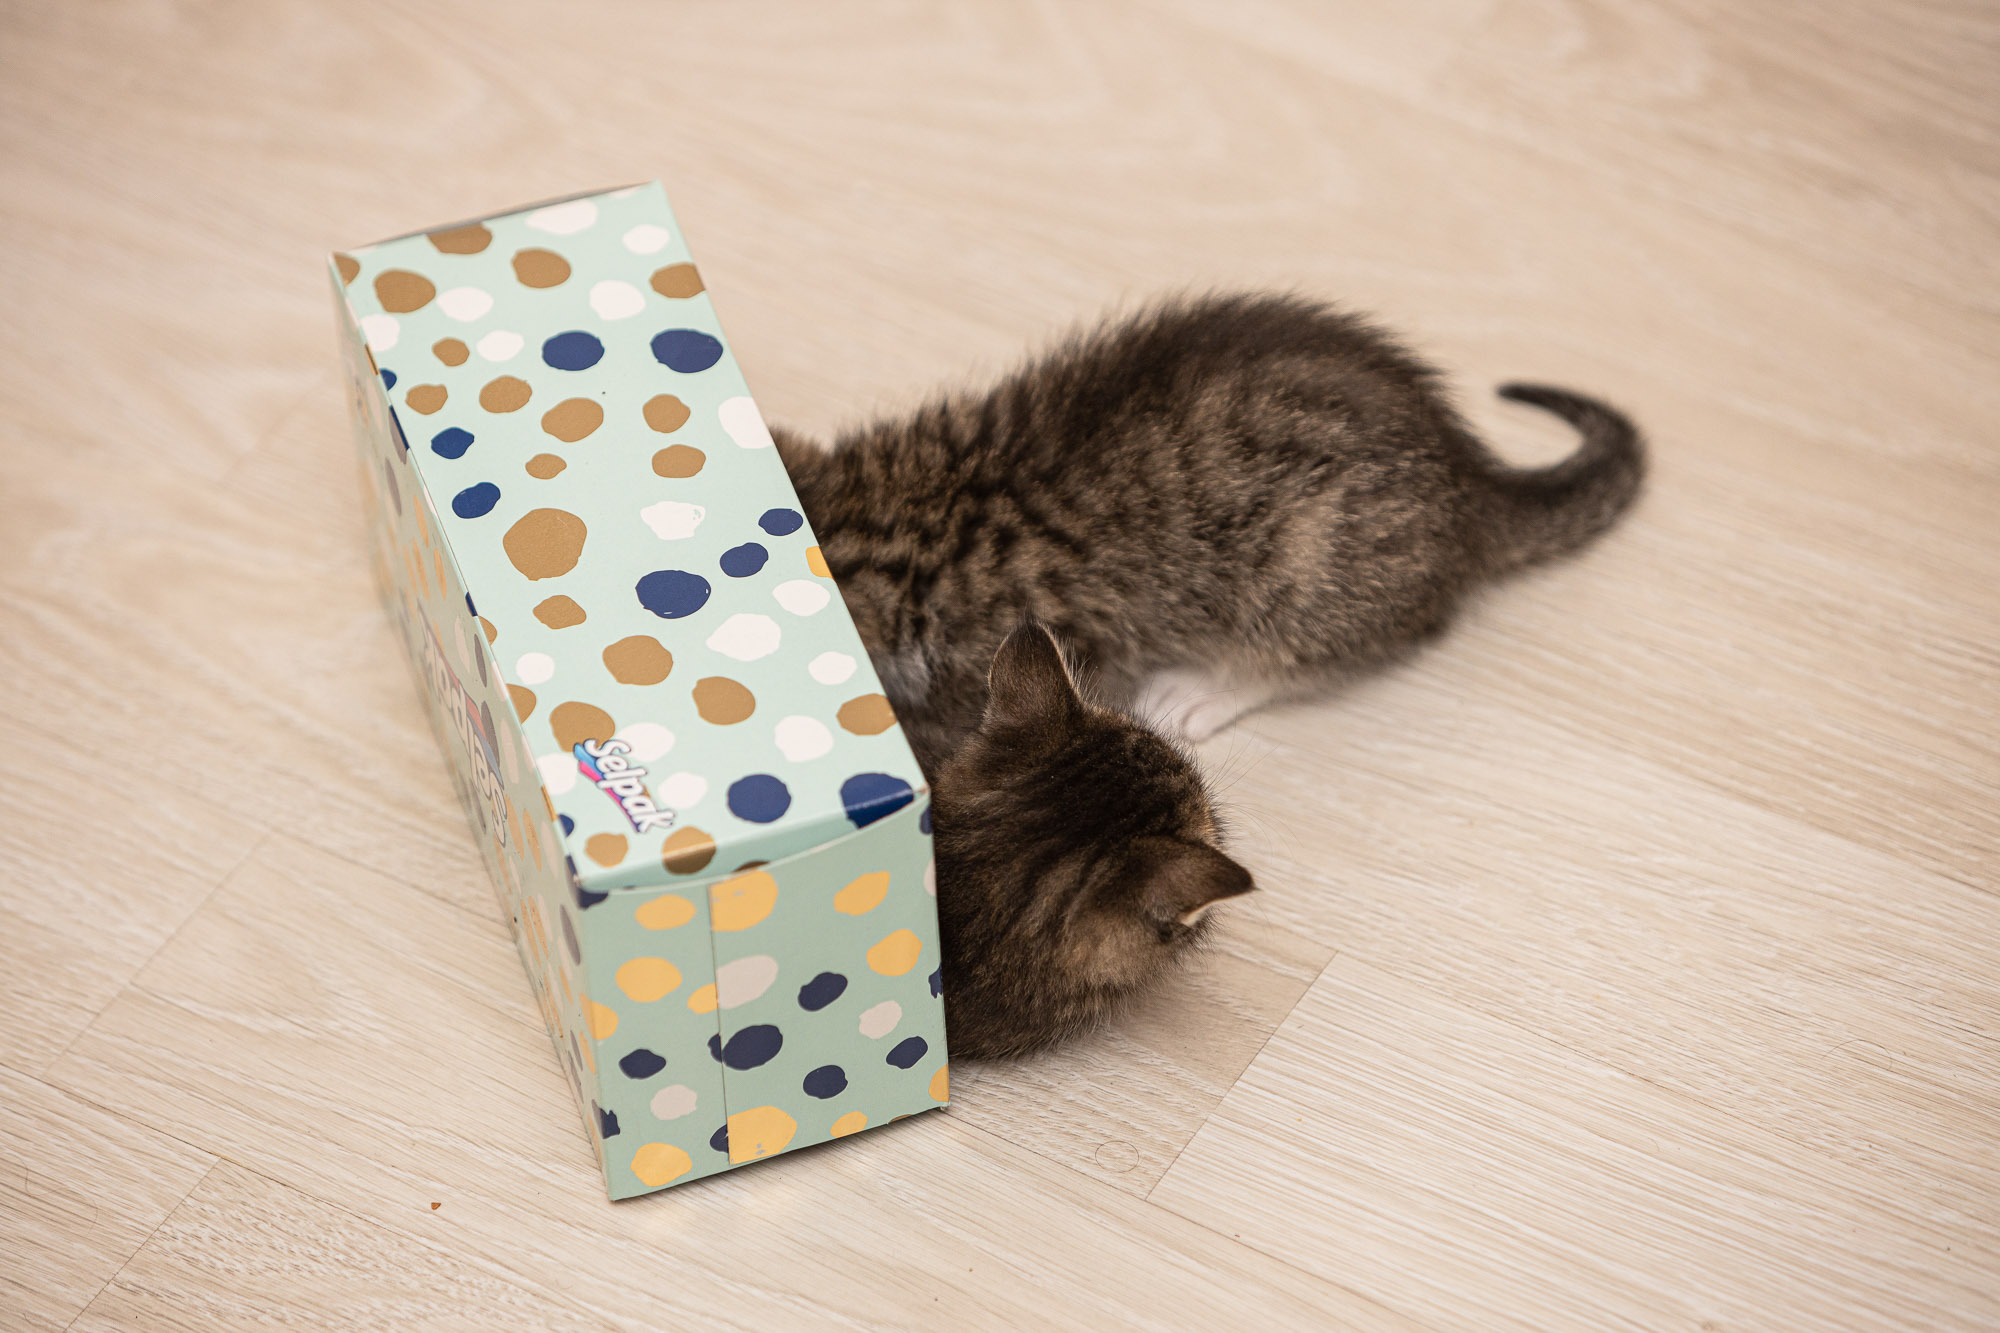 kittehs with tissue box